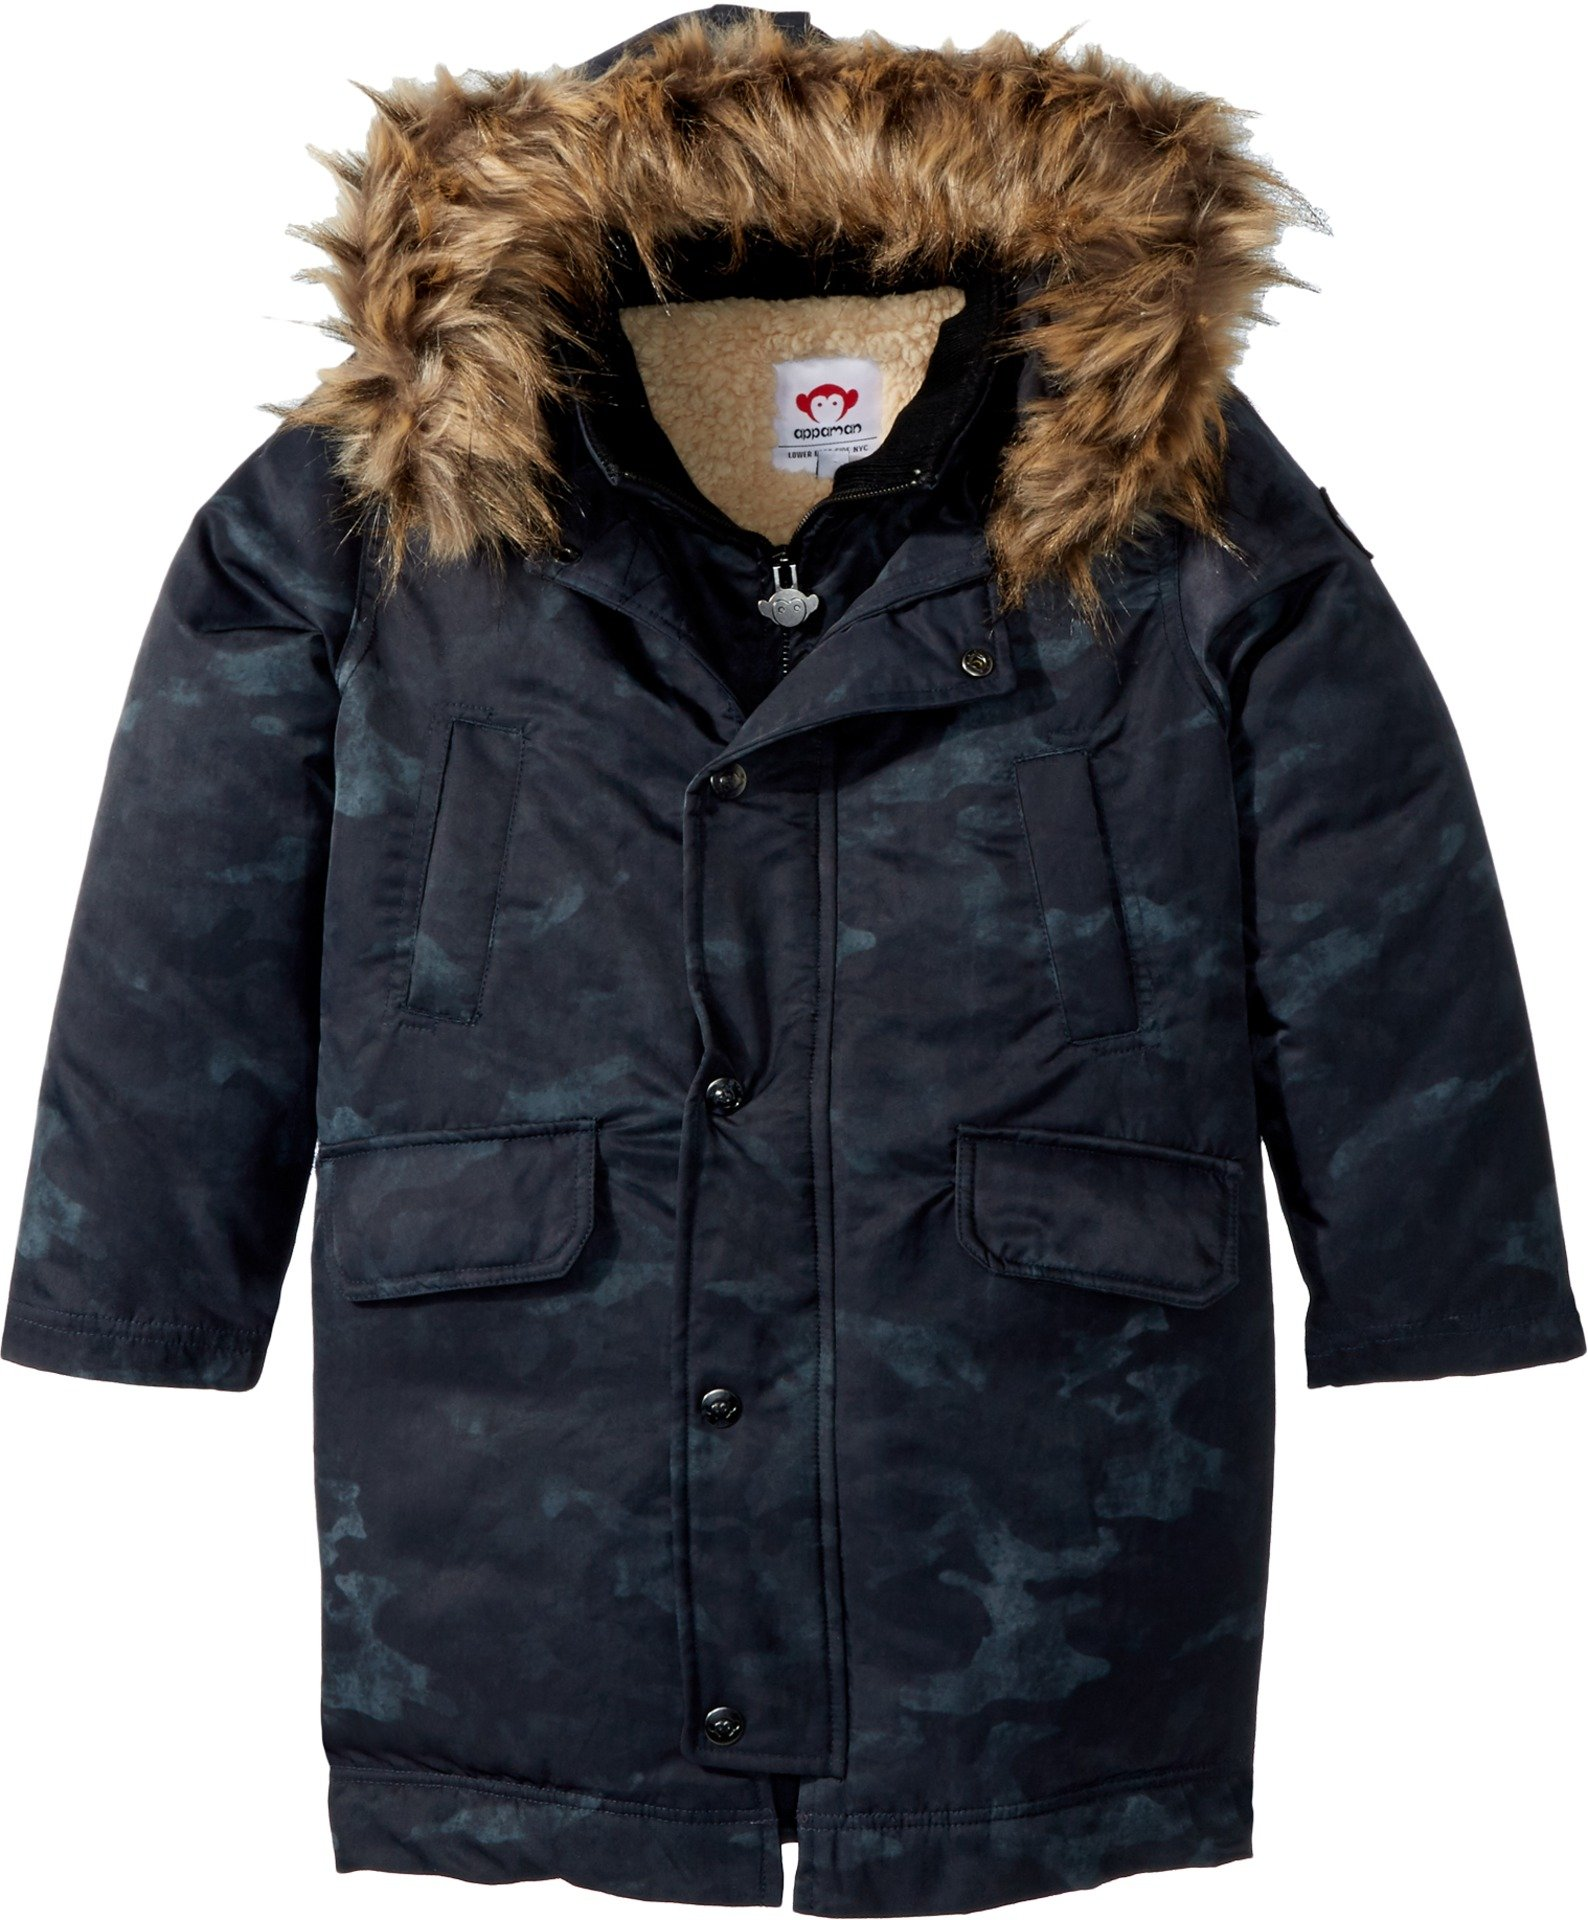 Appaman Boys' Pratt Down Parka, Midnight Camo, 6